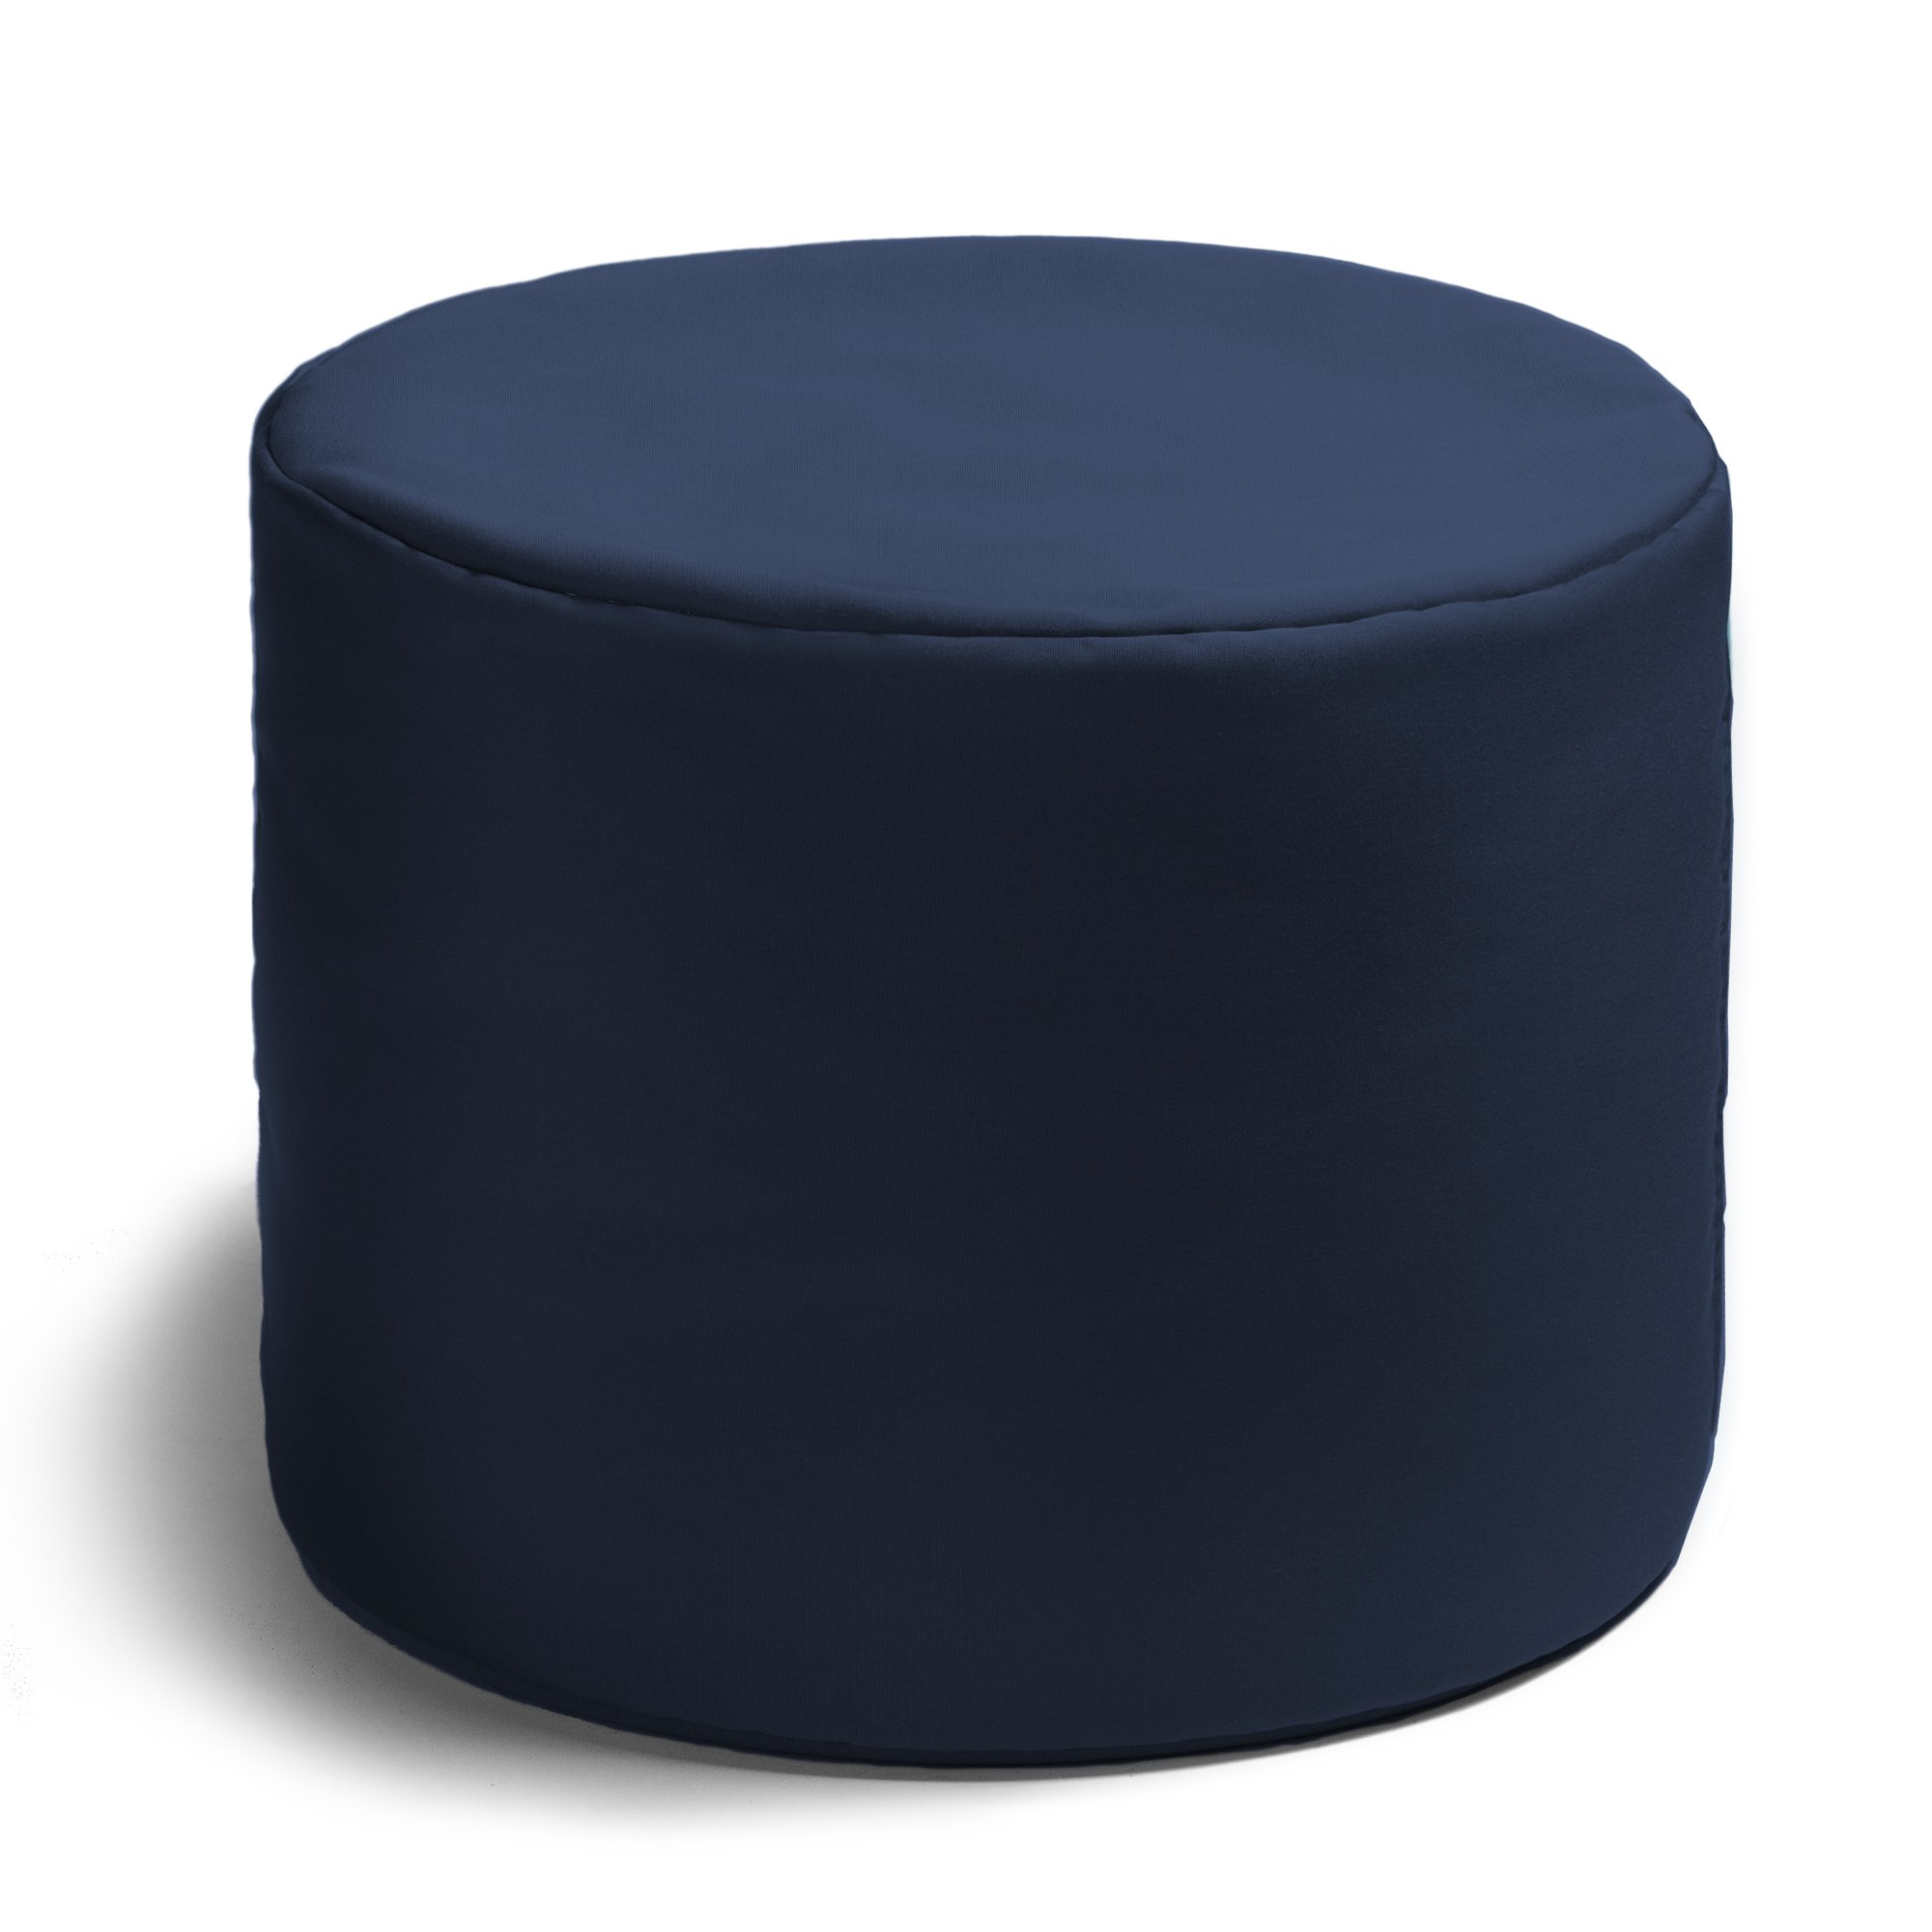 Jaxx Spring Indoor/Outdoor Bean Bag Ottoman, Navy by Jaxx